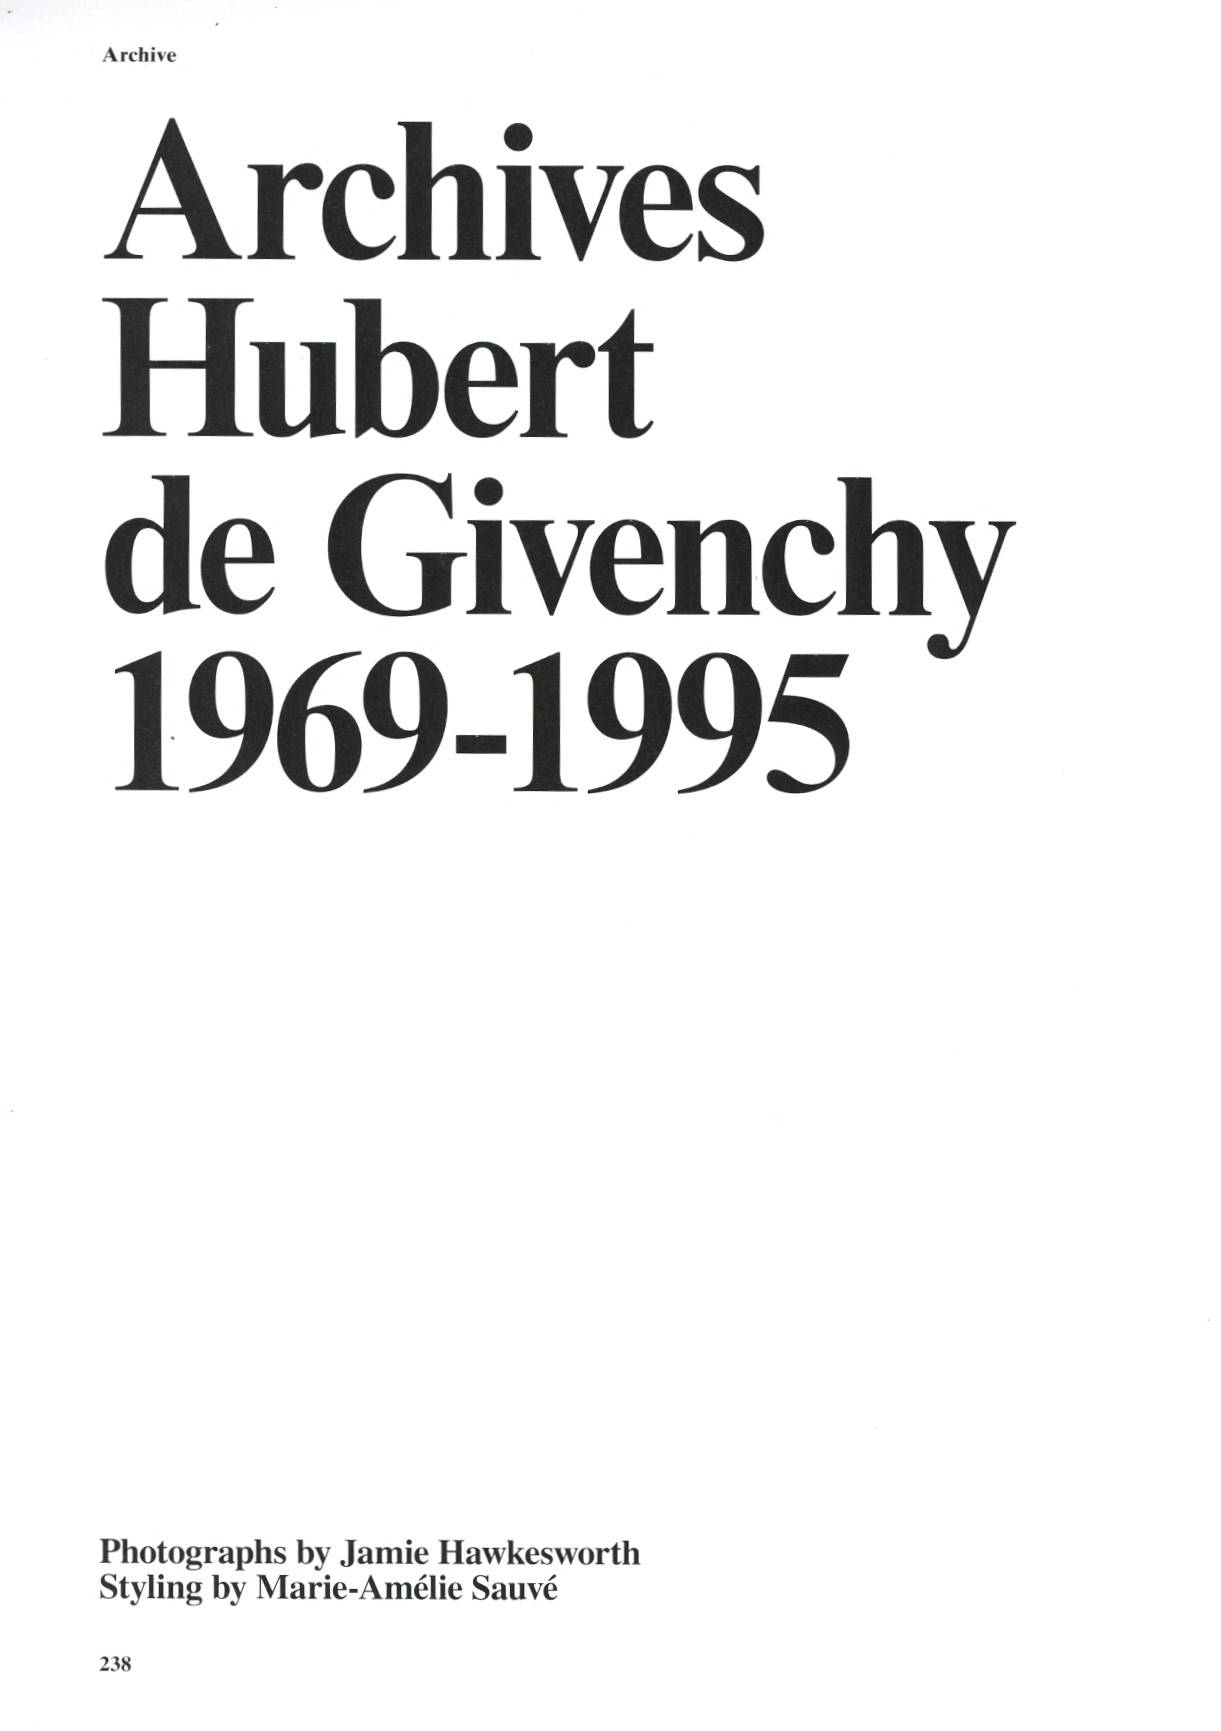 ARCHIVES HUBERT DE GIVENCHY 1969/1995 | PHOTOGRAPHY JAMIE HAWKESWORTH | SYSTEM MAGAZINE | A/W 2015